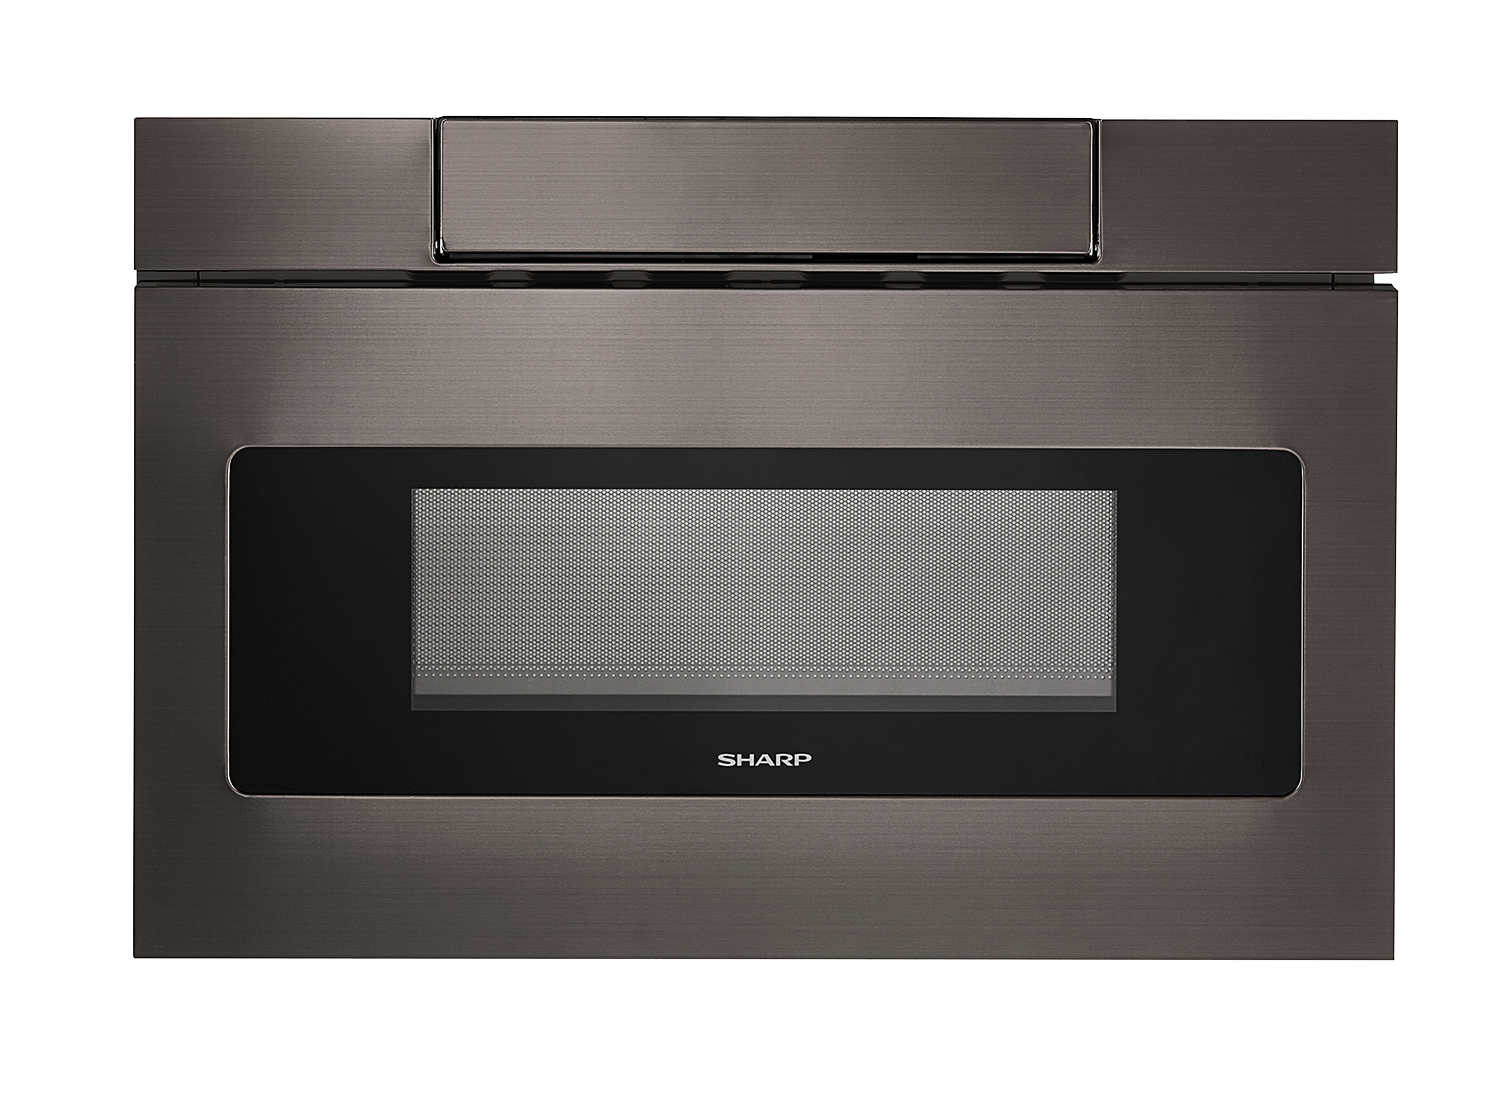 sharp 24 inch microwave drawer. smd2470ah: 24 inch sharp black stainless steel microwave drawer o